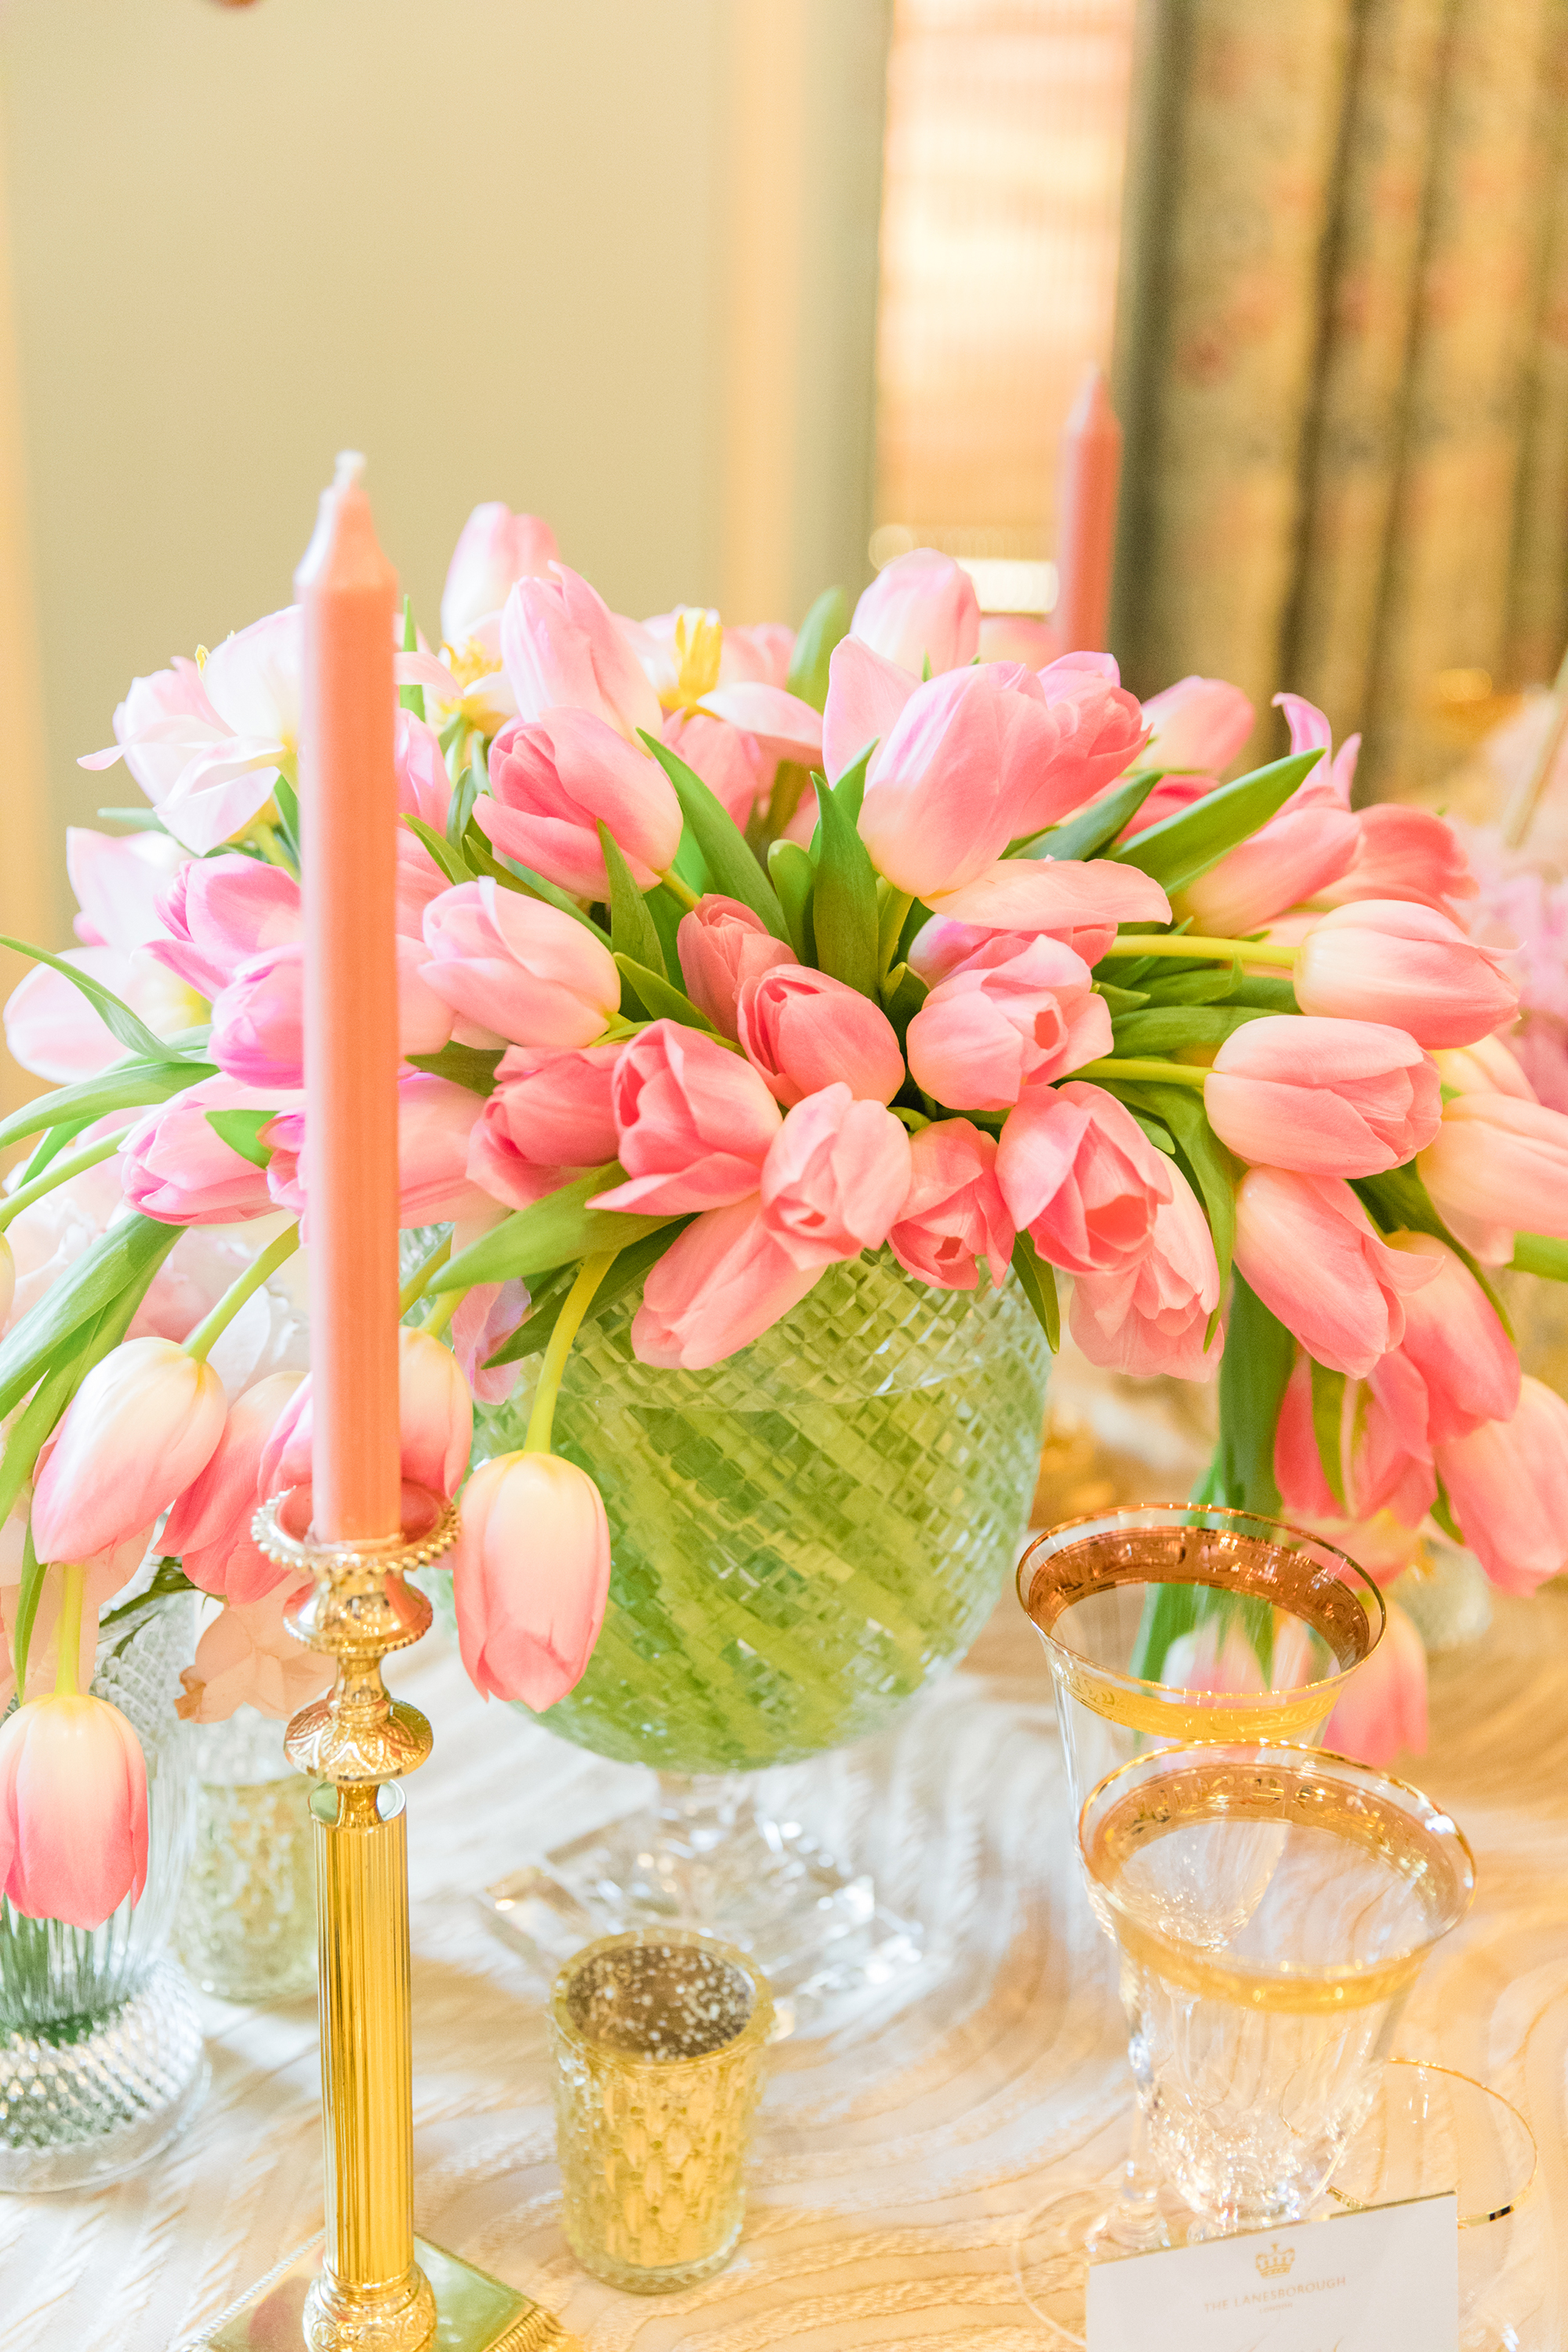 centerpiece full of tulips